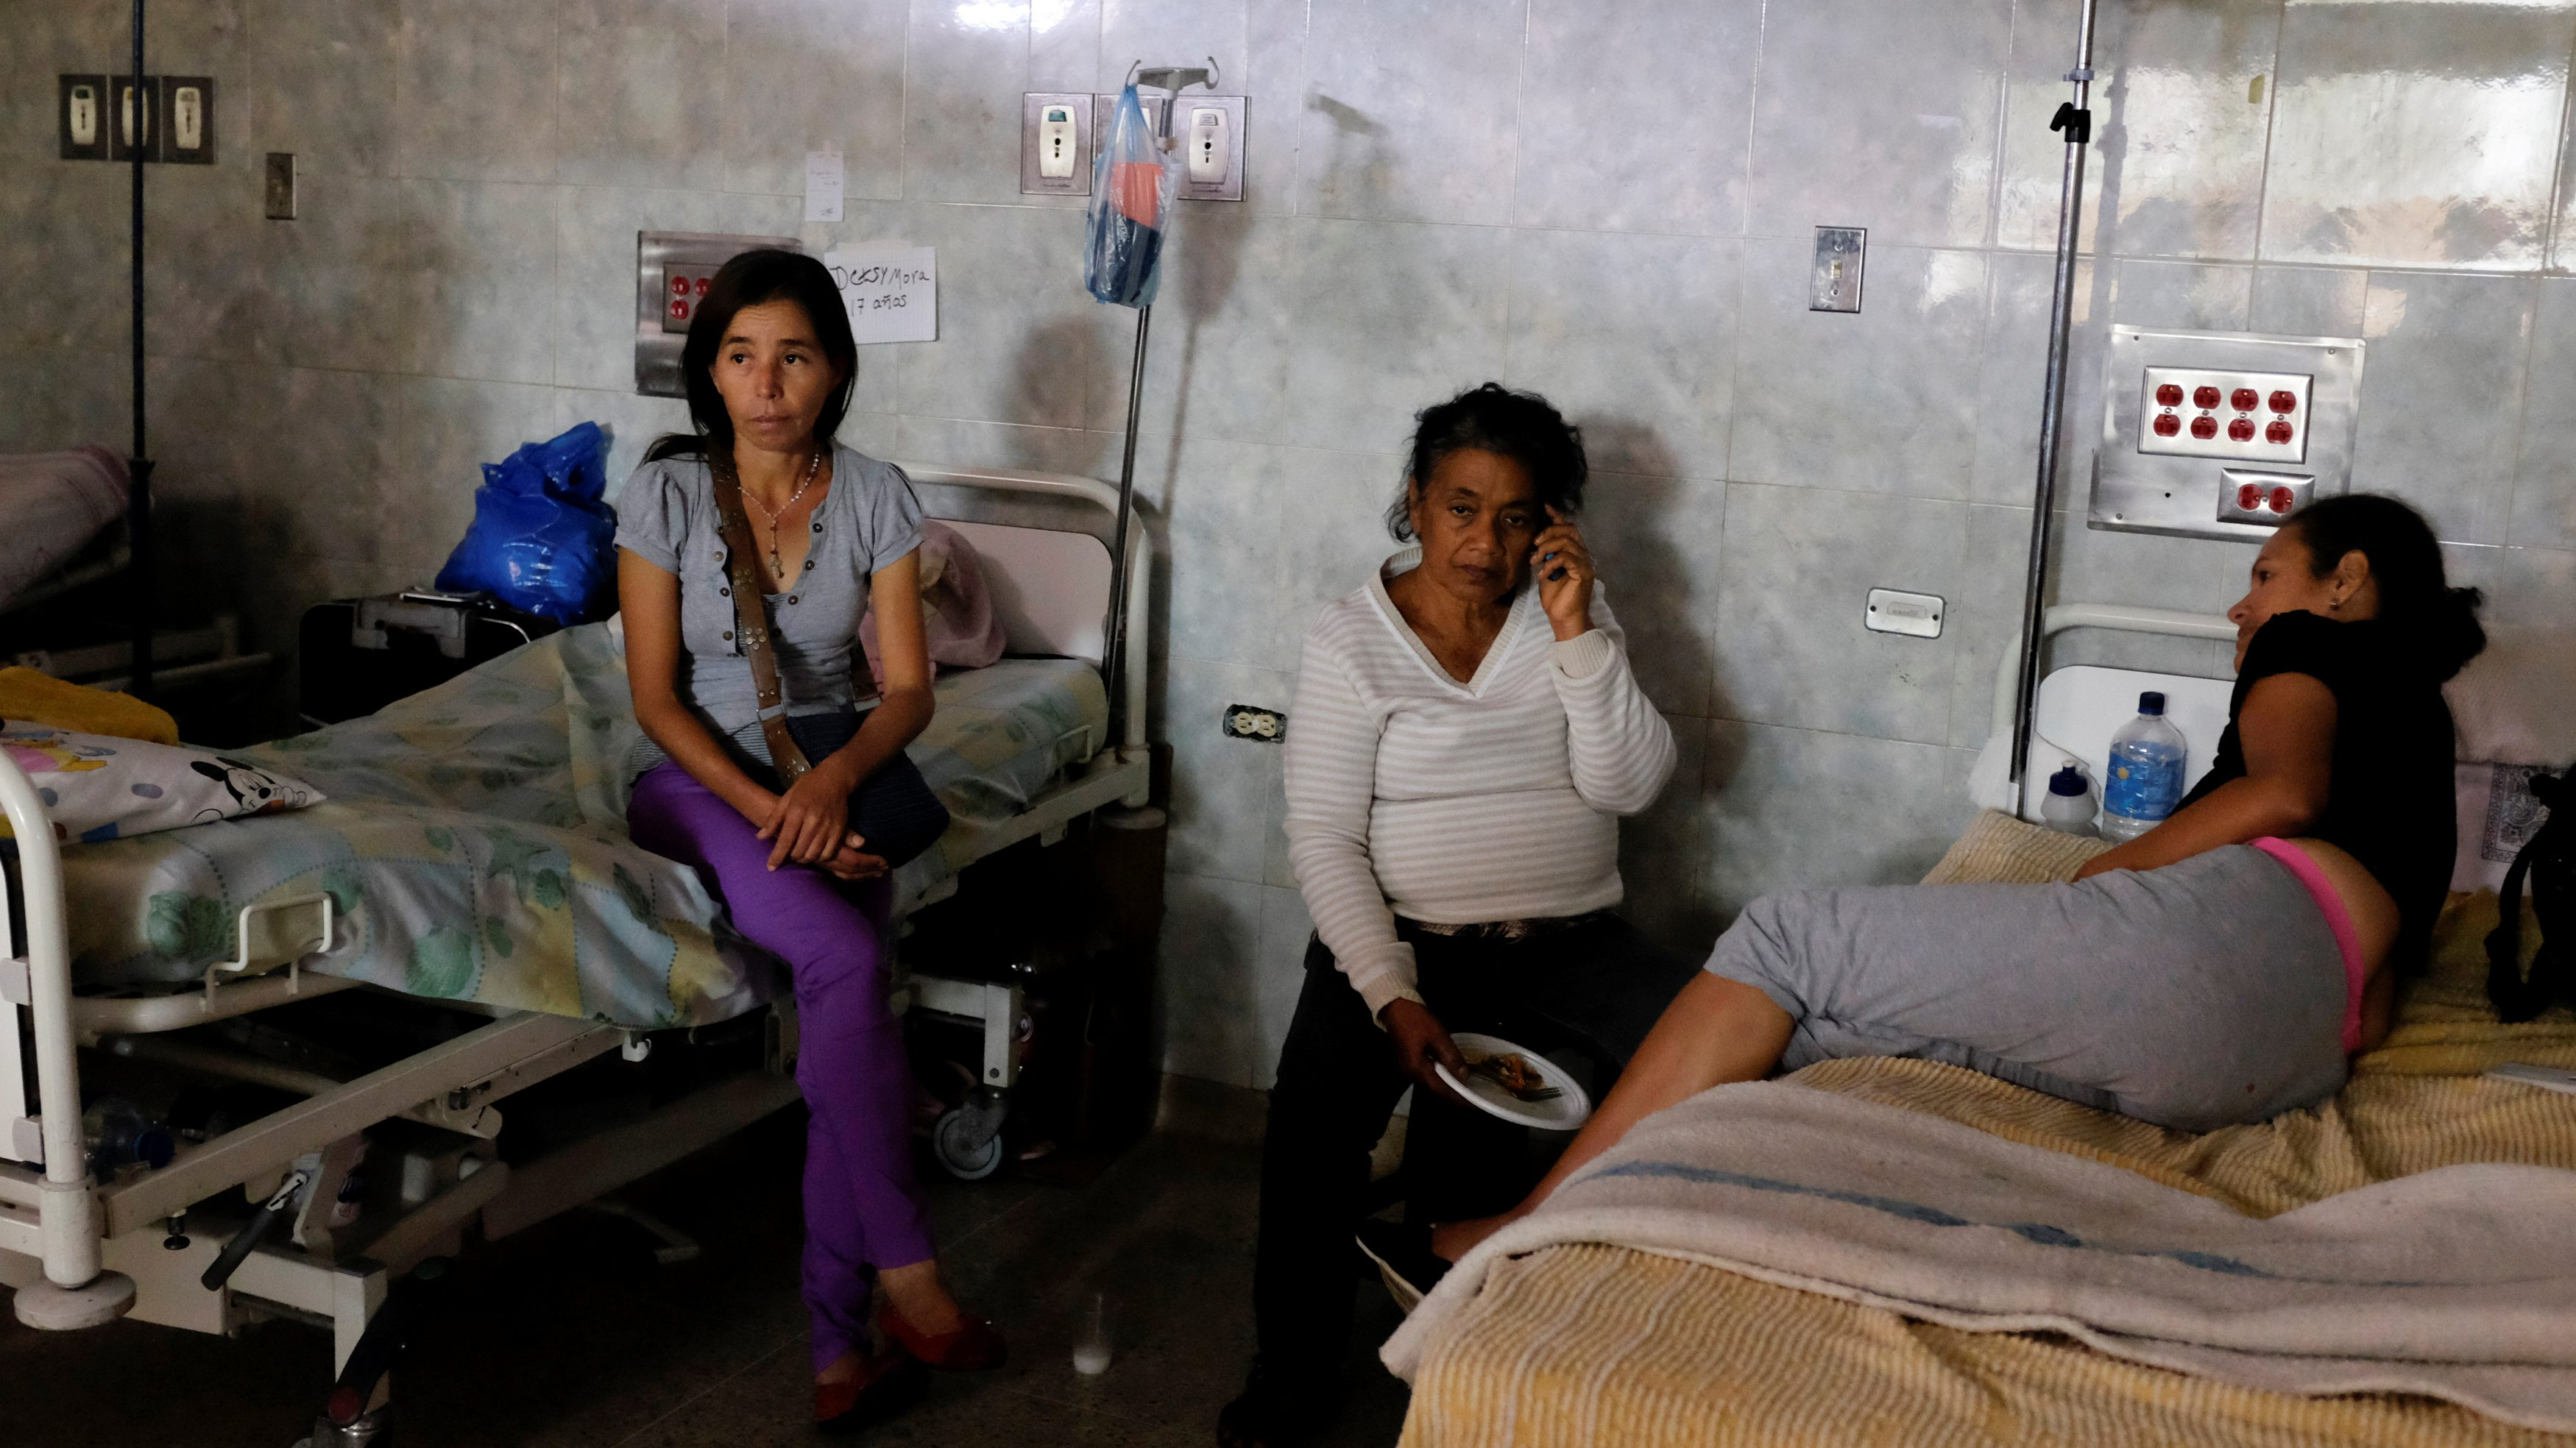 Patients lie on beds at the Universitary Hospital in Venezuela